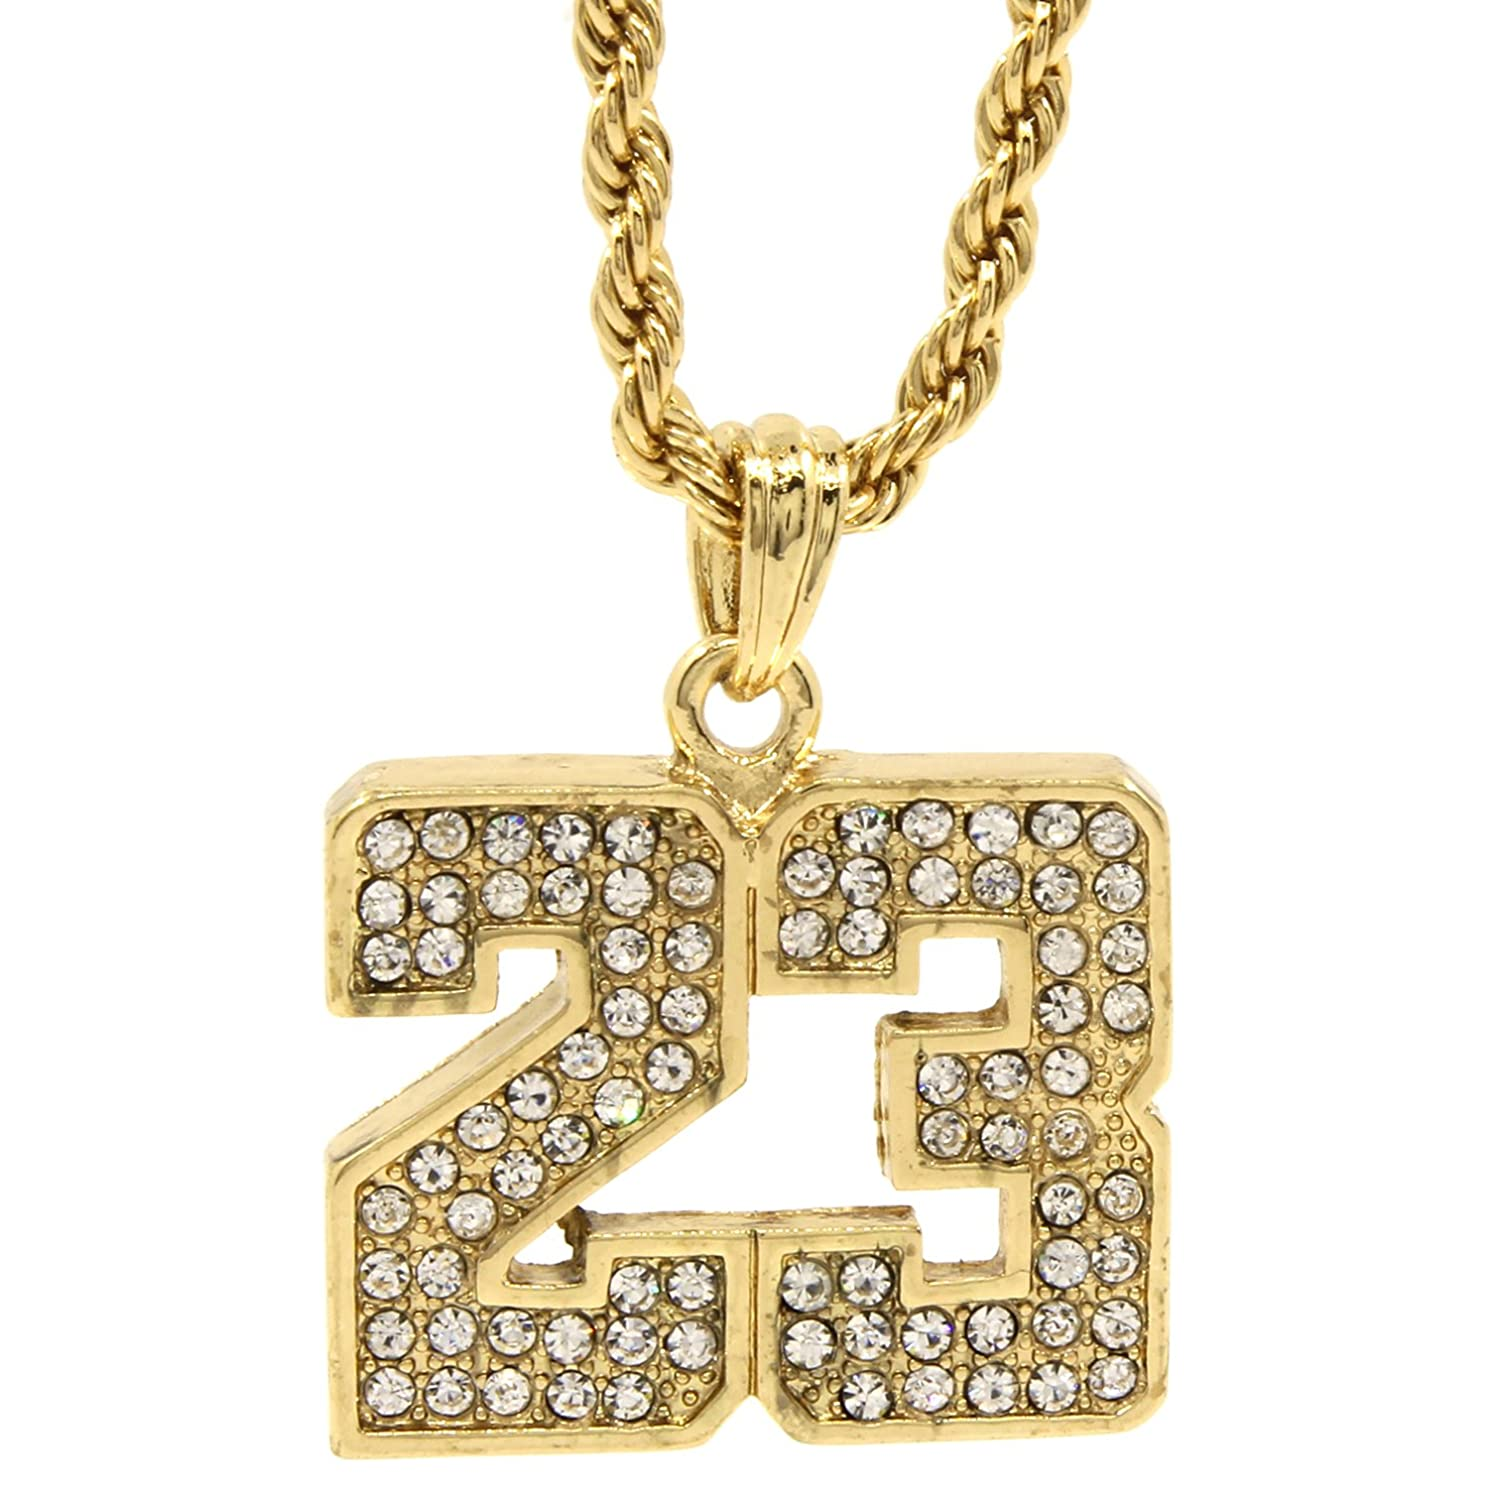 Mens 14k gold plated iced out 23 basketball pendant 24 rope mens 14k gold plated iced out 23 basketball pendant 24 rope chain hip hop necklace d472 amazon mozeypictures Images